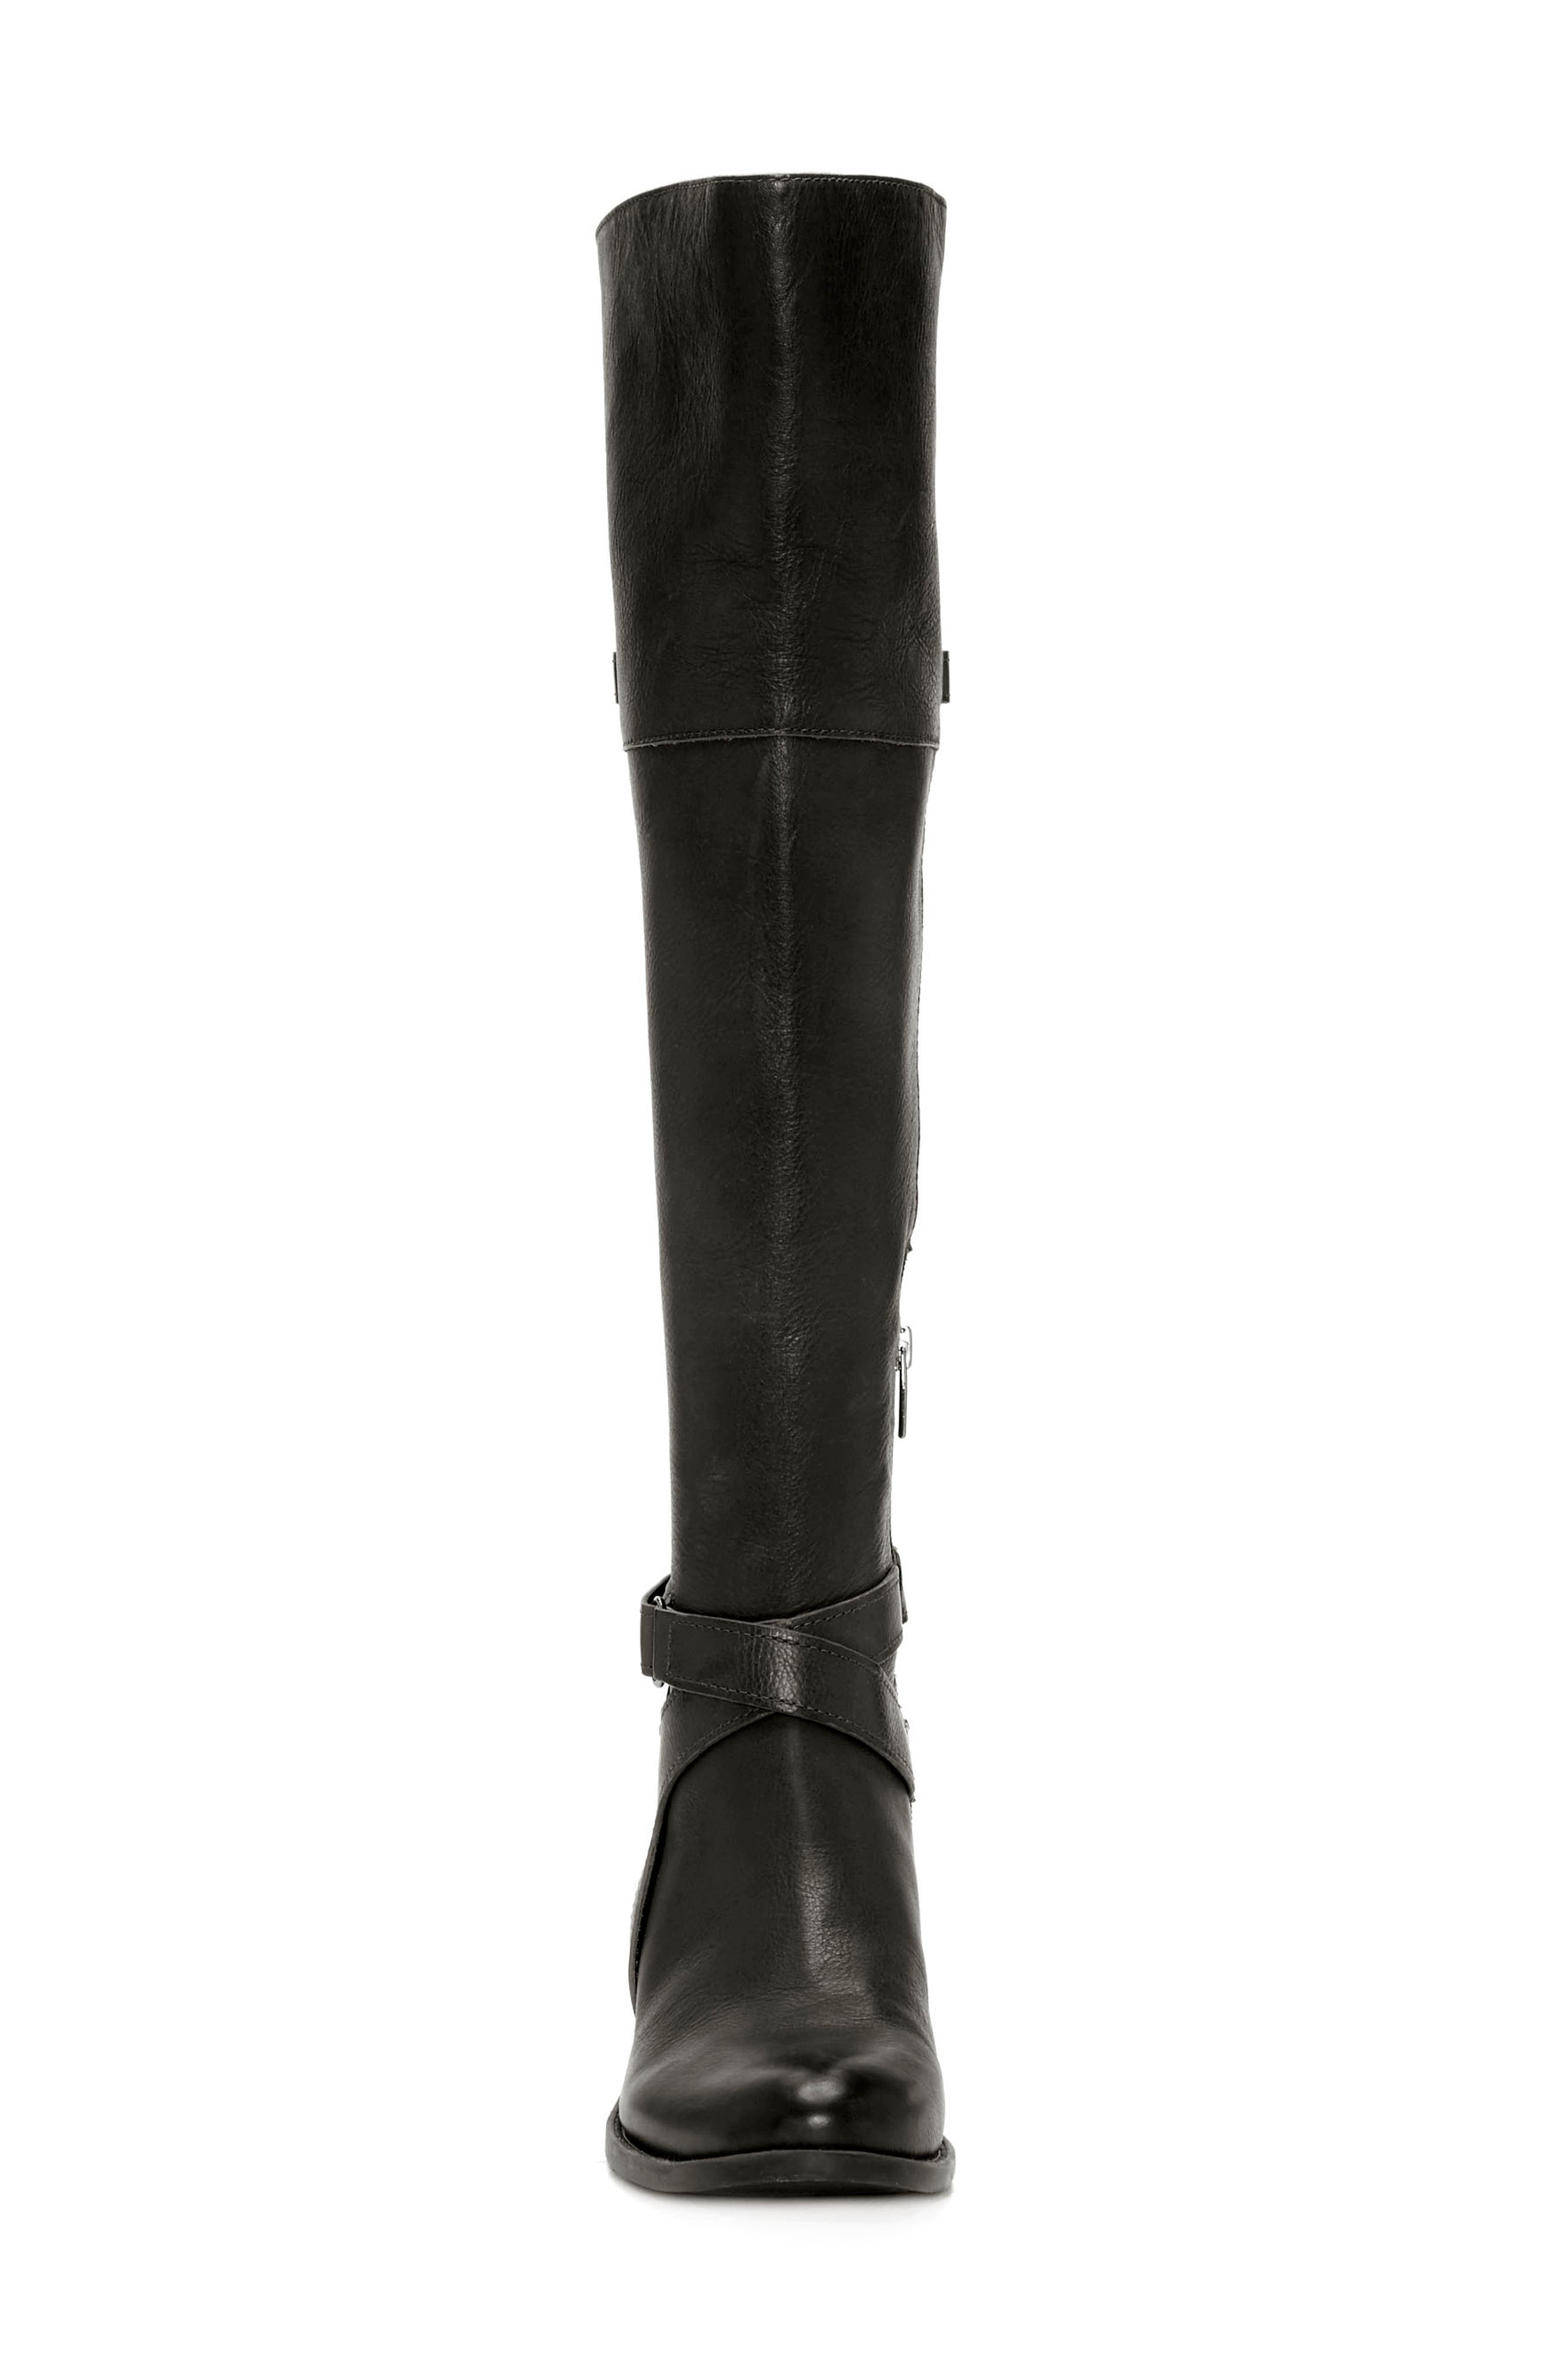 Bestant Over the Knee Boot,                             Alternate thumbnail 4, color,                             BLACK LEATHER WIDE CALF